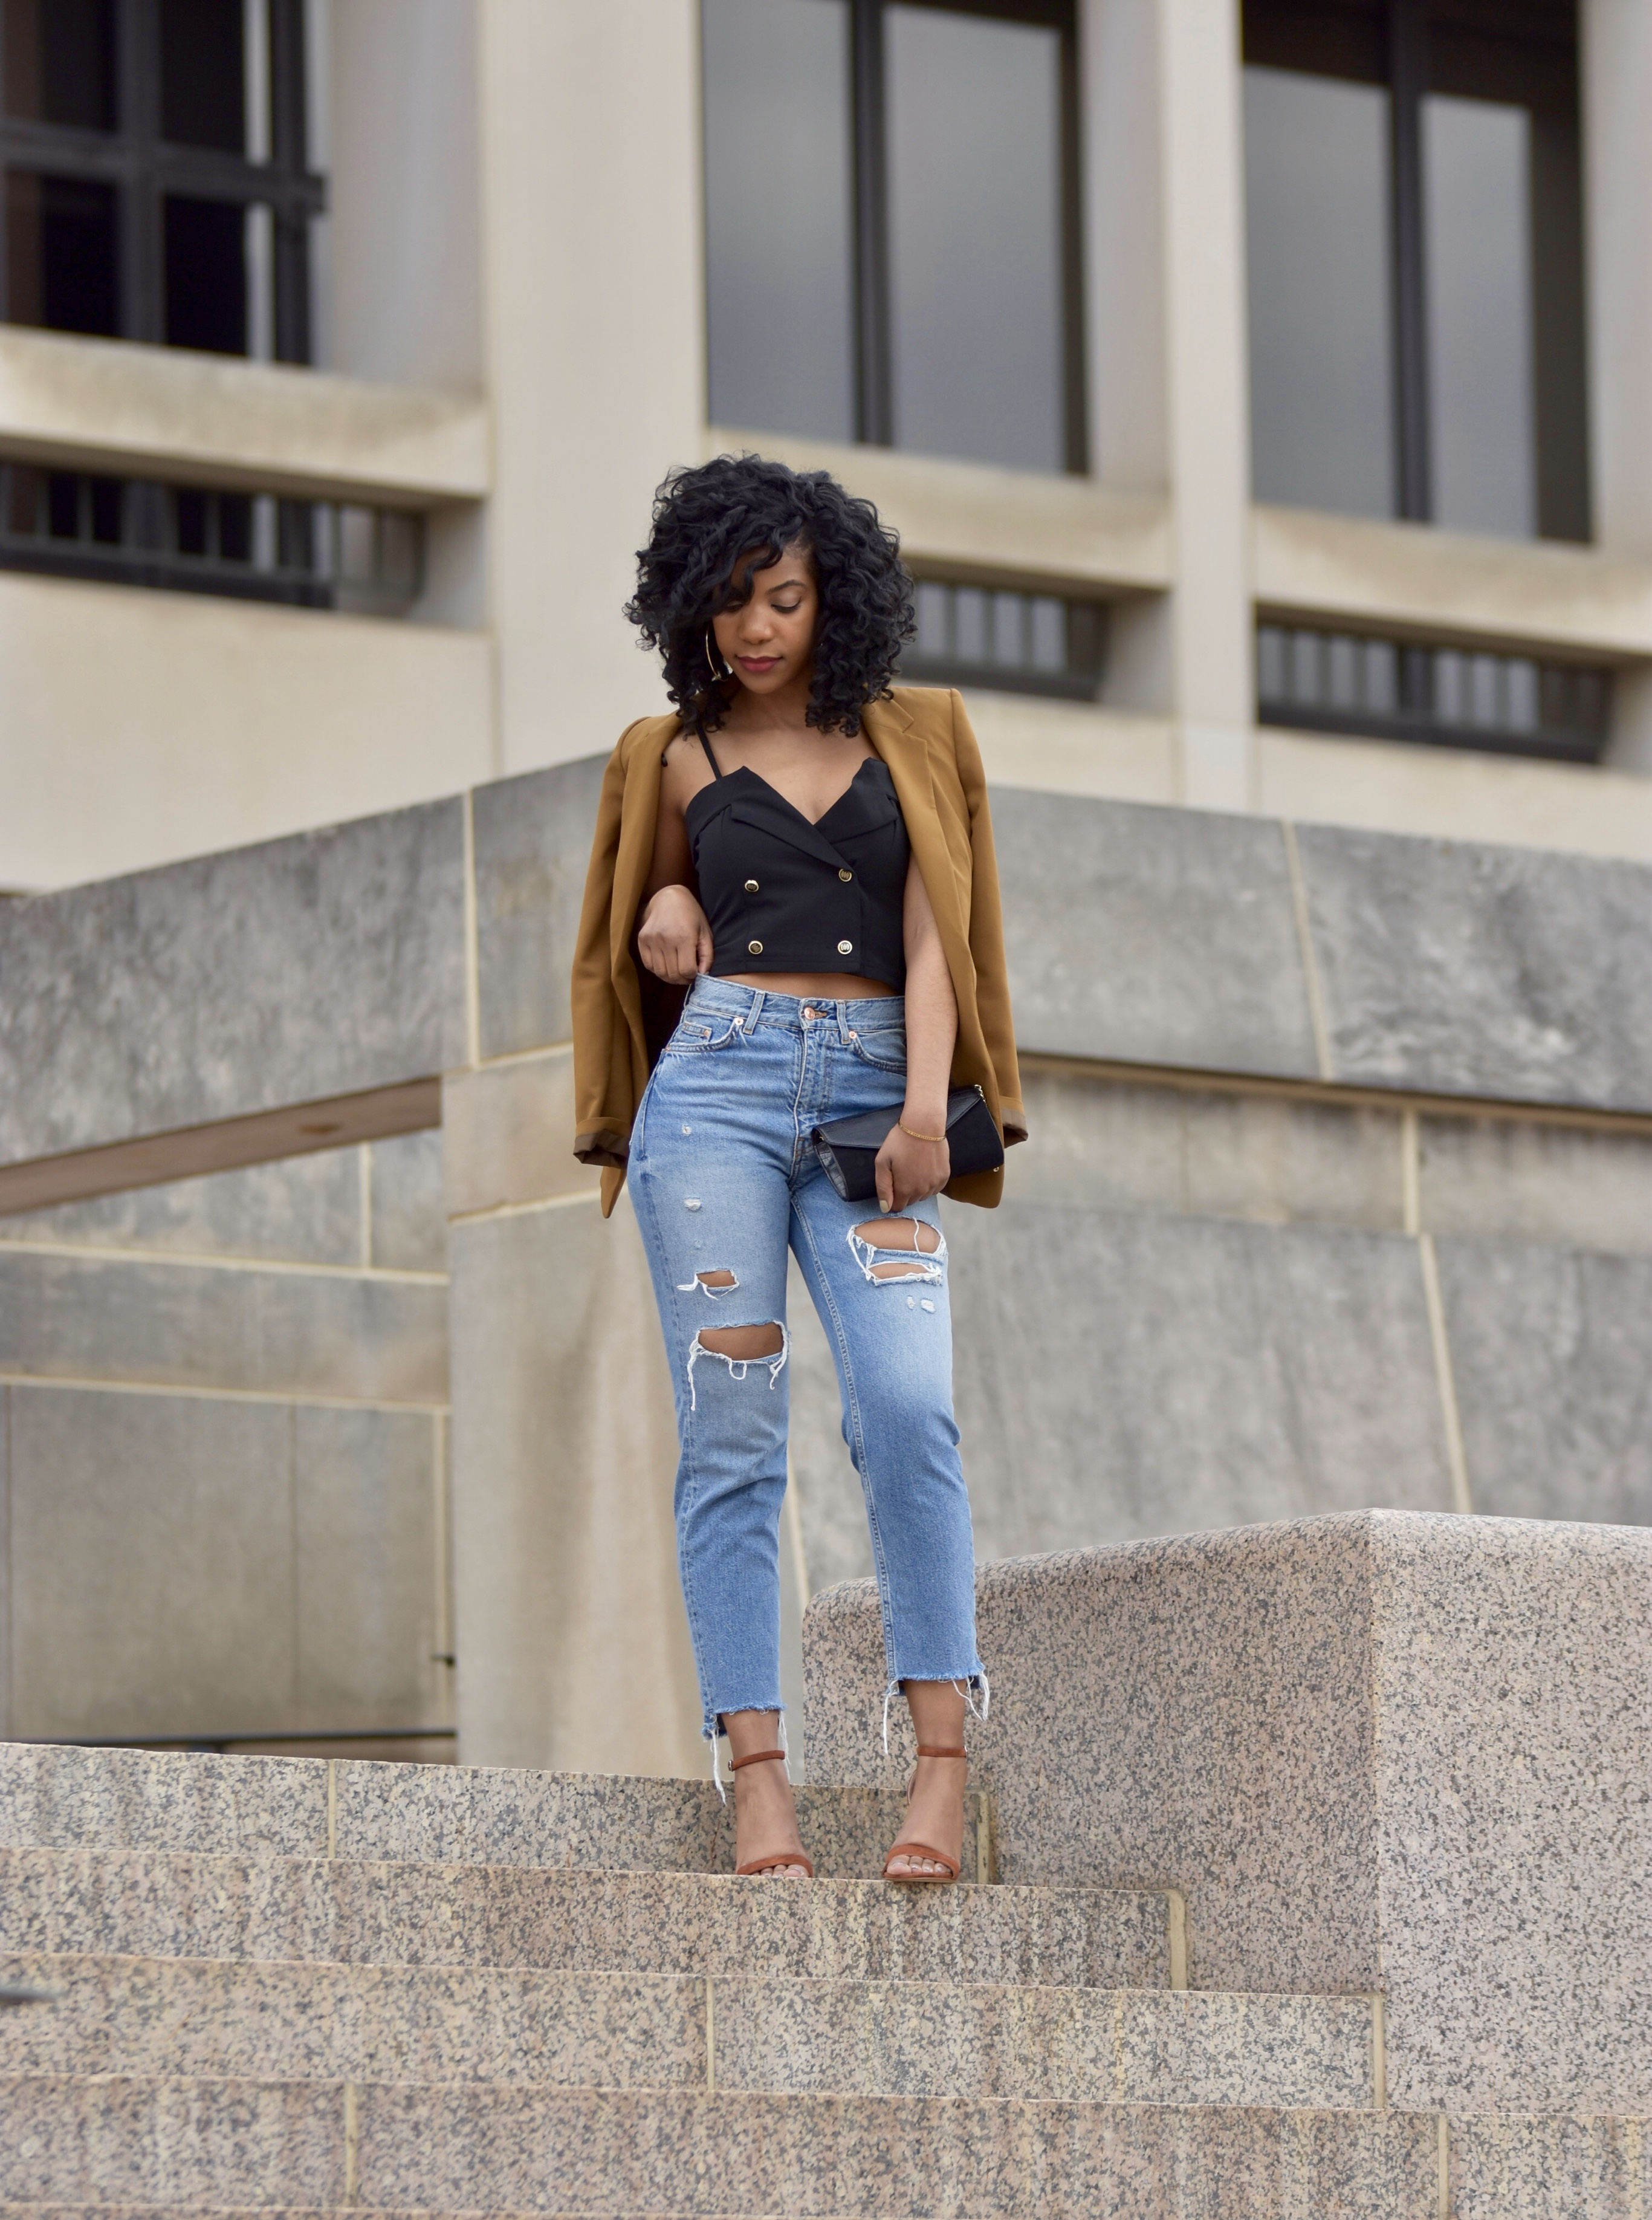 SHEIN Foldover Front Double Breasted Cami Top http://bit.ly/2TQsmBP, H&M Ripped High Waisted Jeans, Steve Madden Carrson Suede Sandal, Flat Lens Sunglasses, http://bit.ly/2W6Aydz, H&M tan blazer